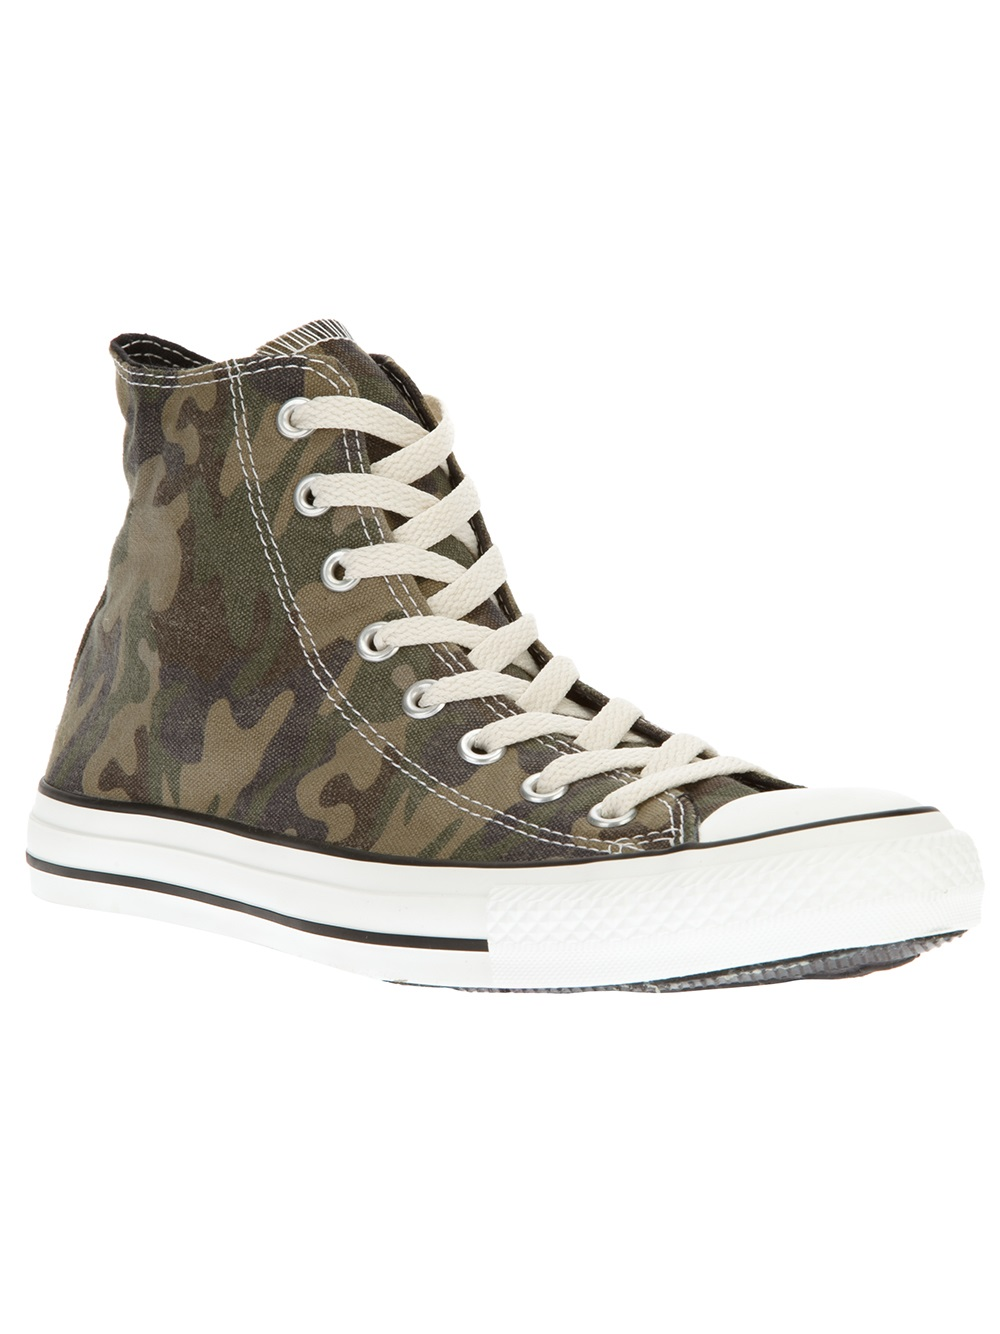 Converse Camouflage Hitop In Green For Men Lyst